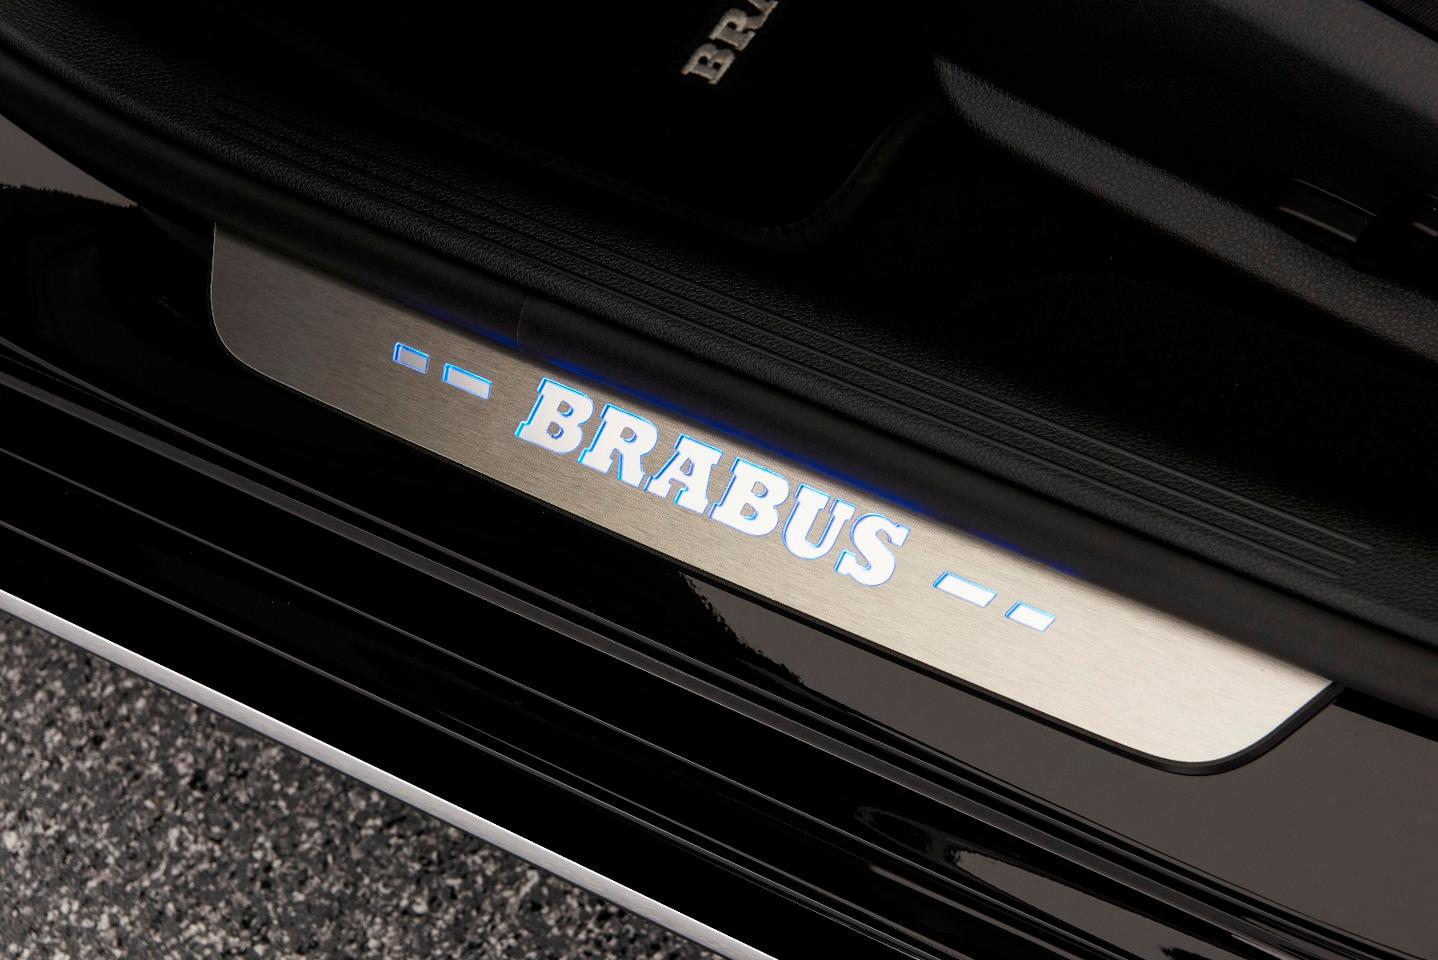 Just in case you weren't sure this is a Brabus...